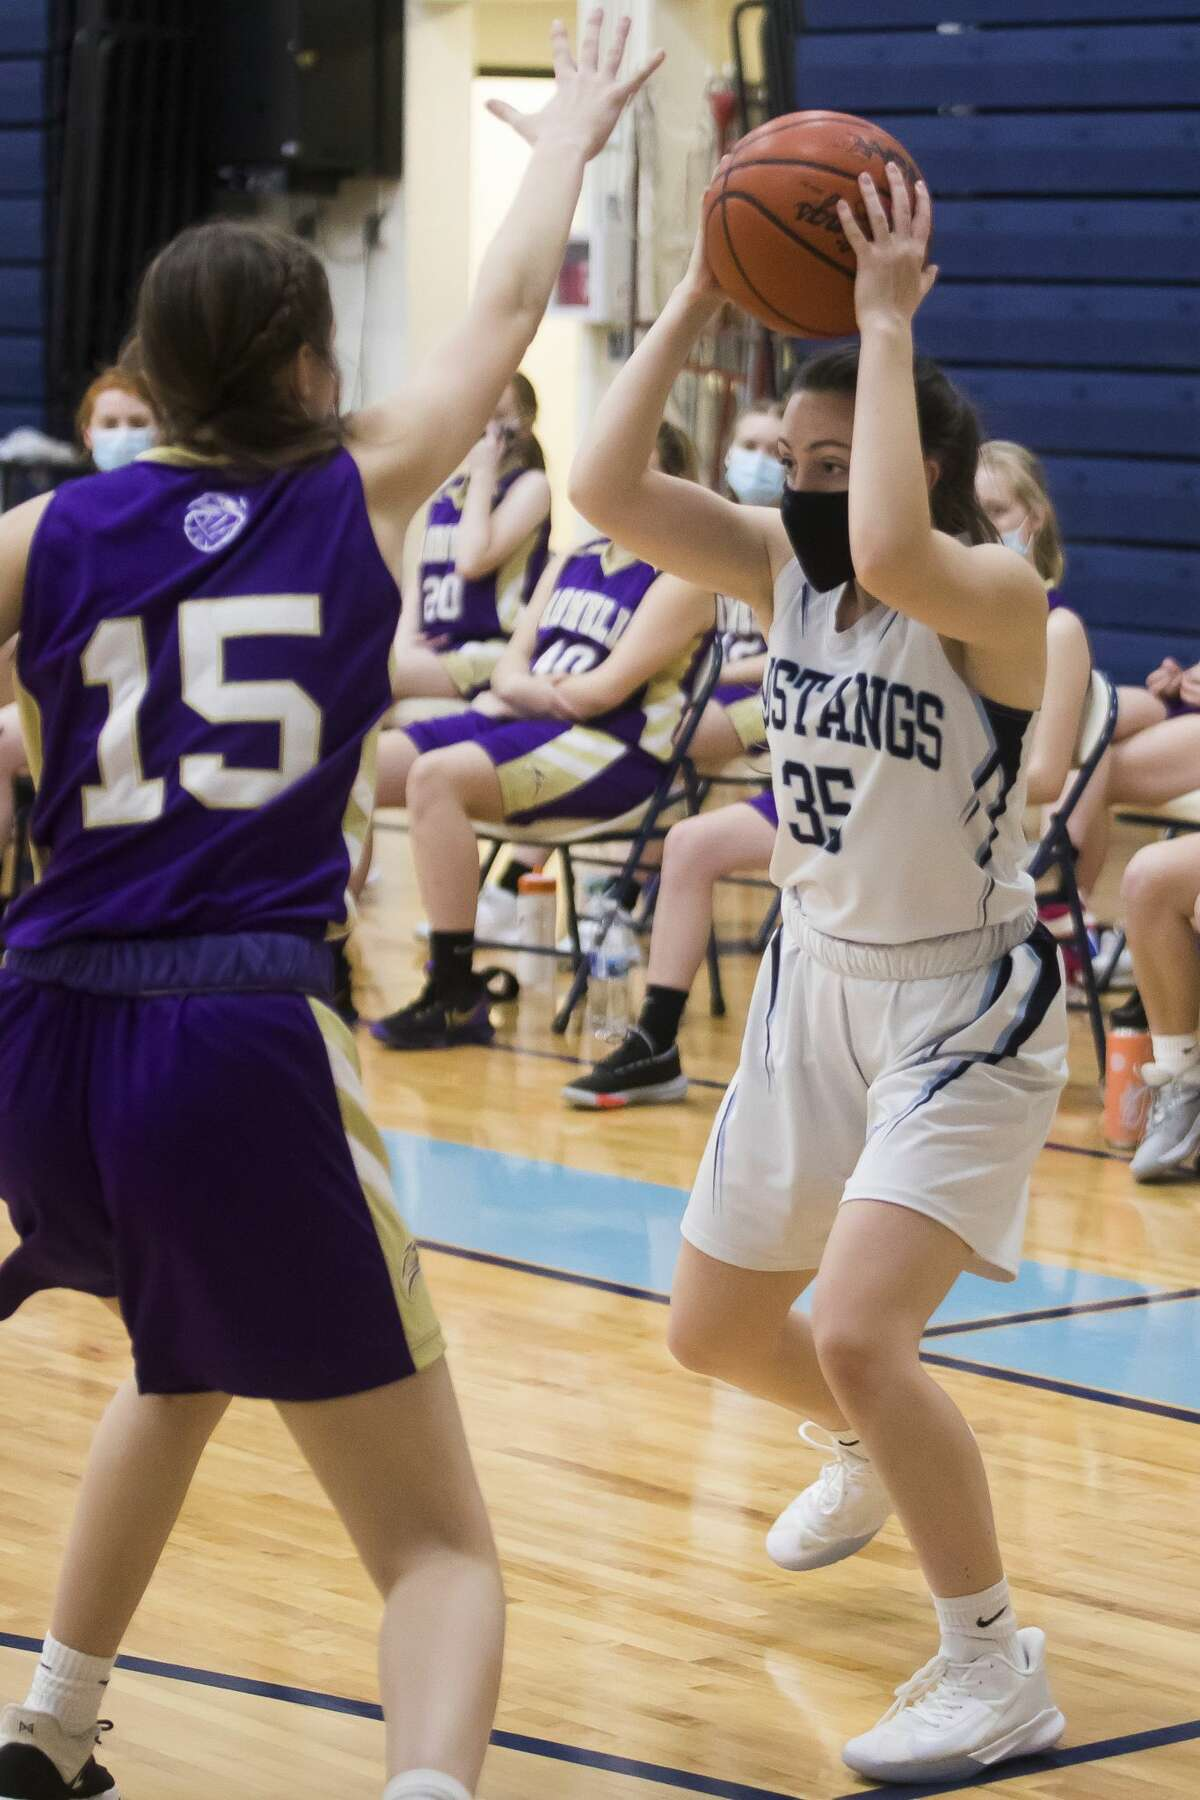 Meridian's Trinity Kolka looks for a teammate to pass to during the Mustangs' game against Farwell Tuesday, Feb. 23, 2021 at Meridian Early College High School. (Katy Kildee/kkildee@mdn.net)